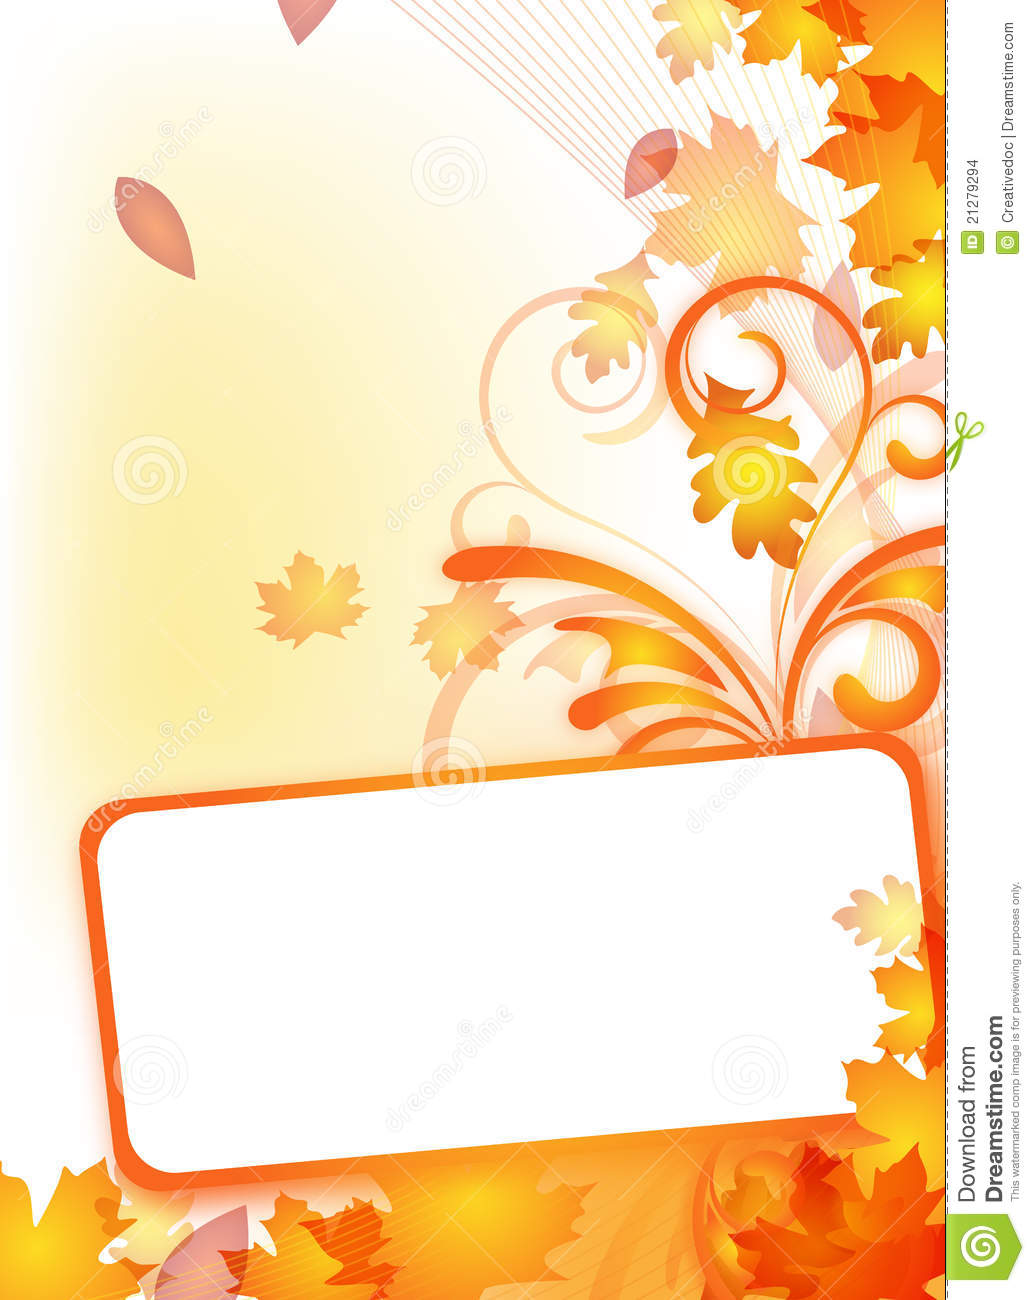 Autumn Flyer With Text Frame Stock Vector - Image: 21279294